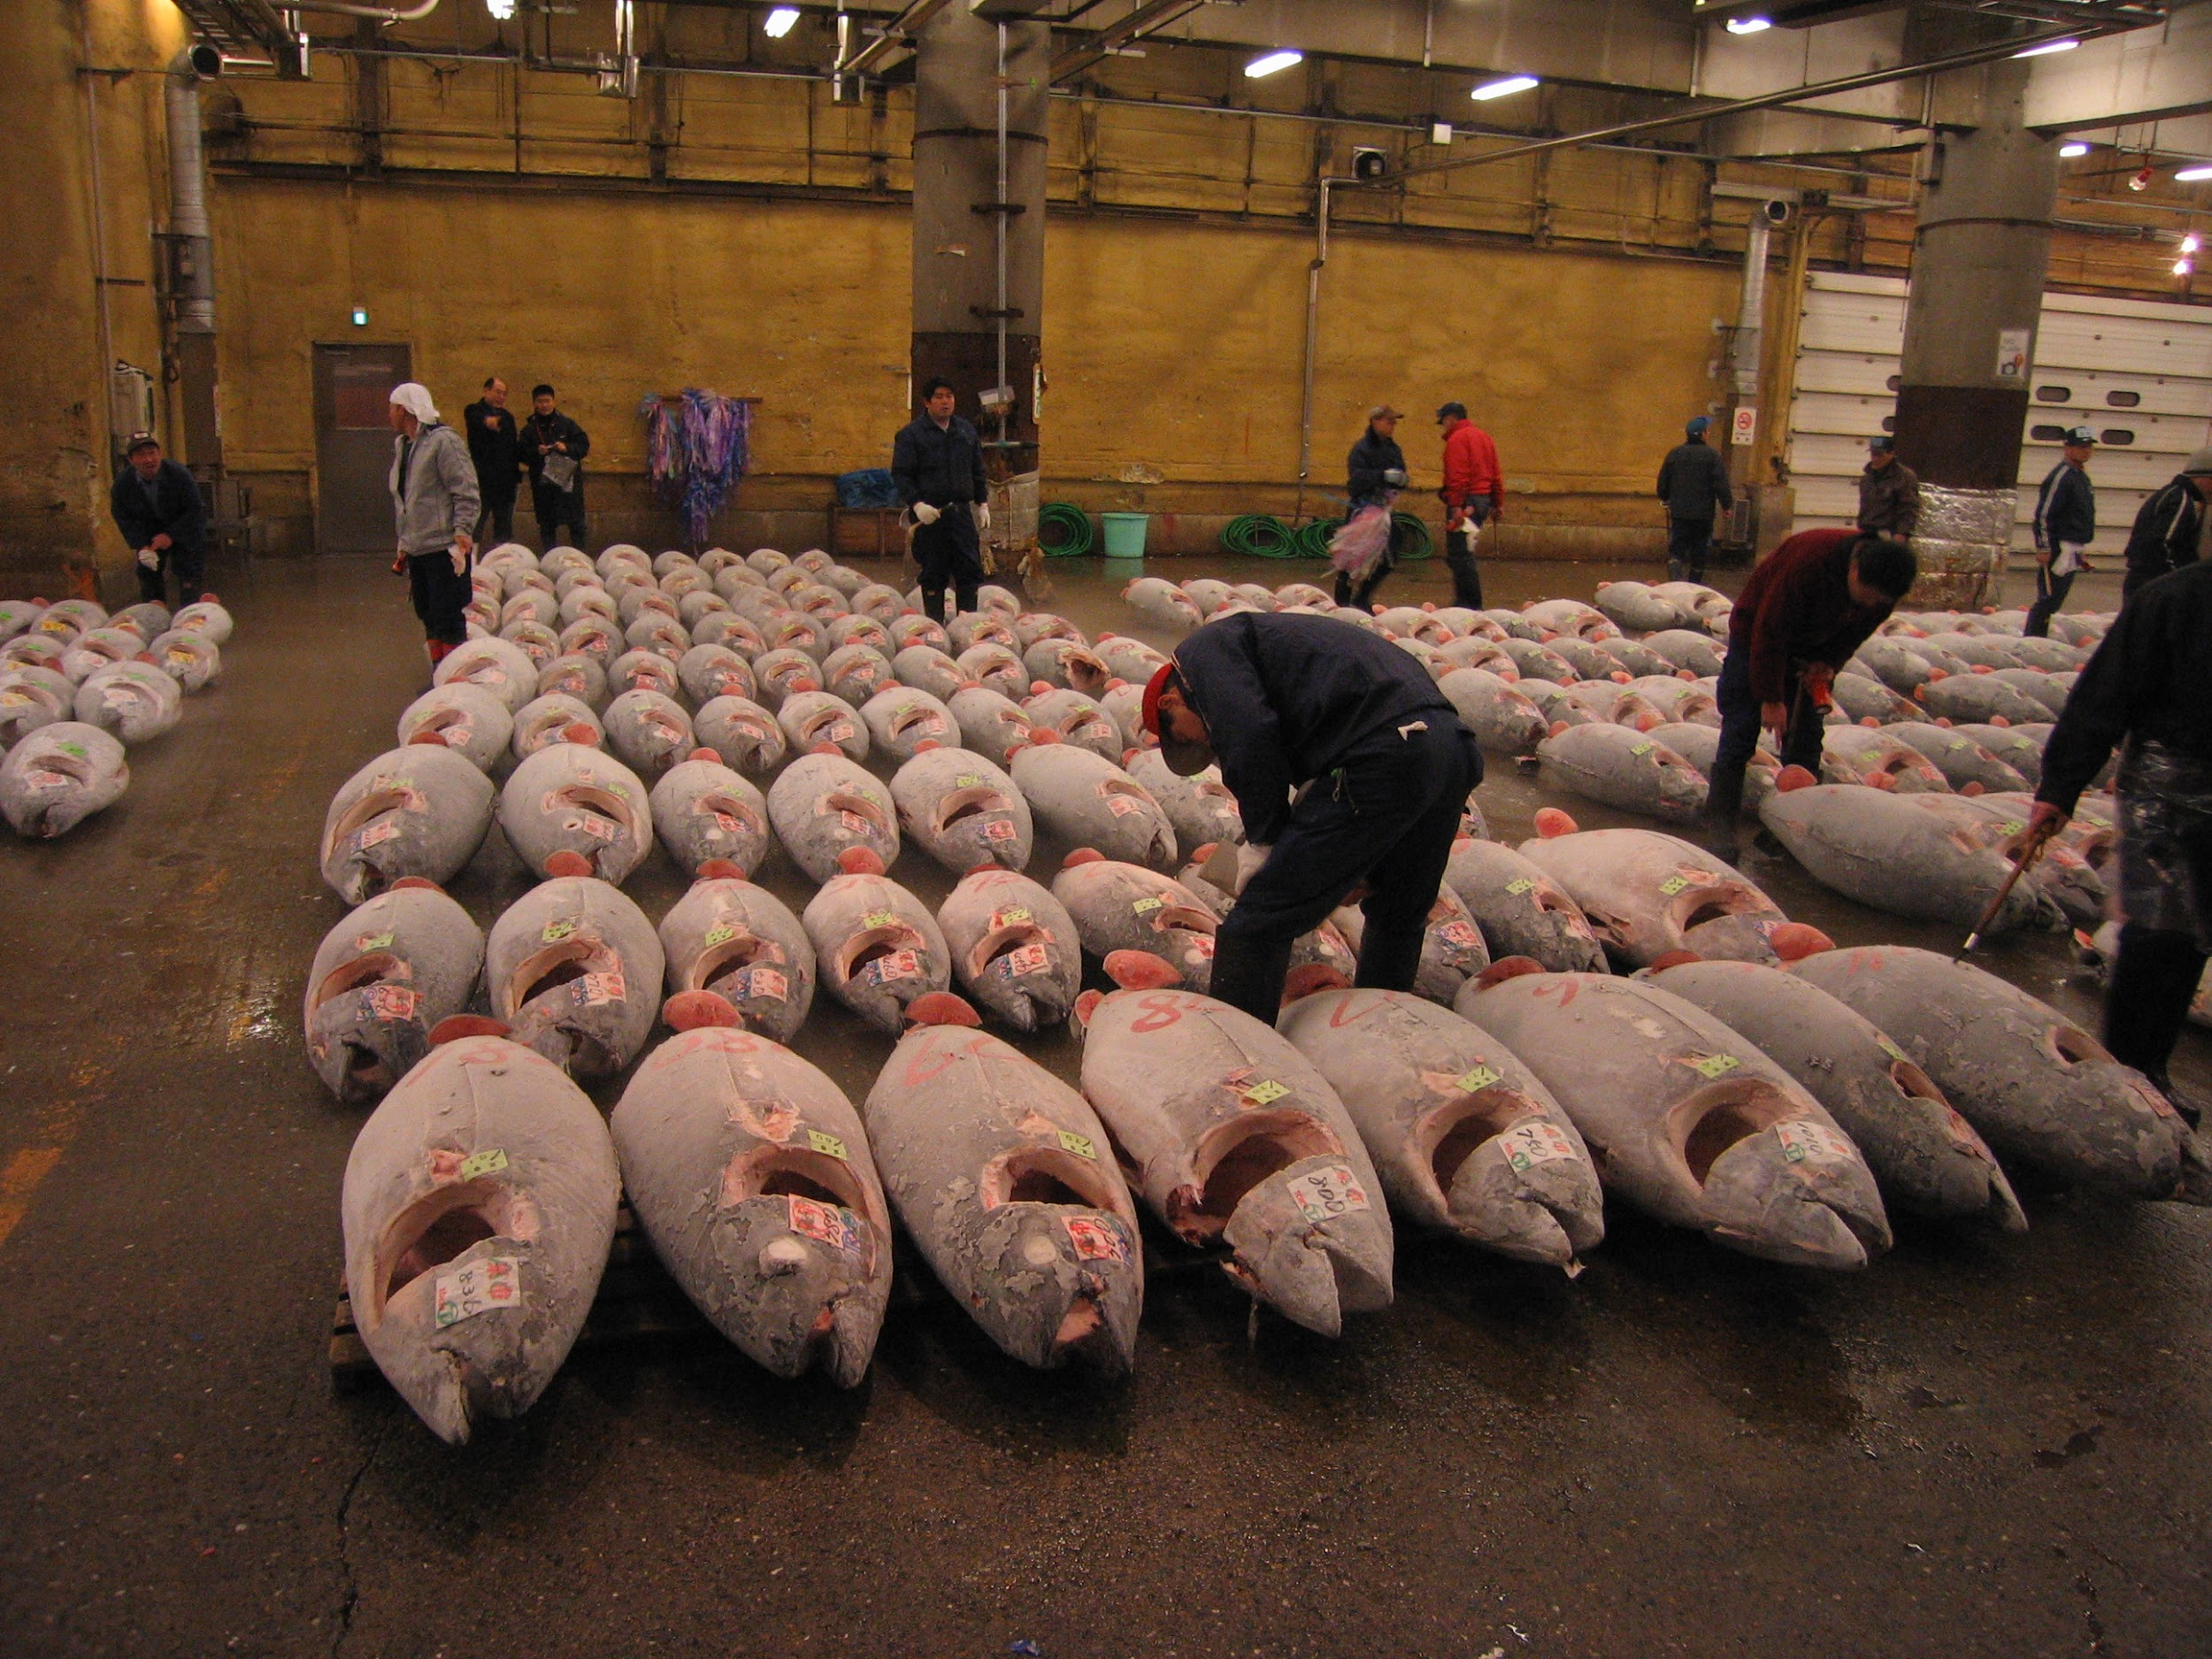 Tuna are caught, frozen, and shipped to the fish market in Japan. They will be auctioned off here, then shipped to the buyer, who might represent a restaurant or a fish supply company that would then sell to the restaurant.This process is repeated daily.